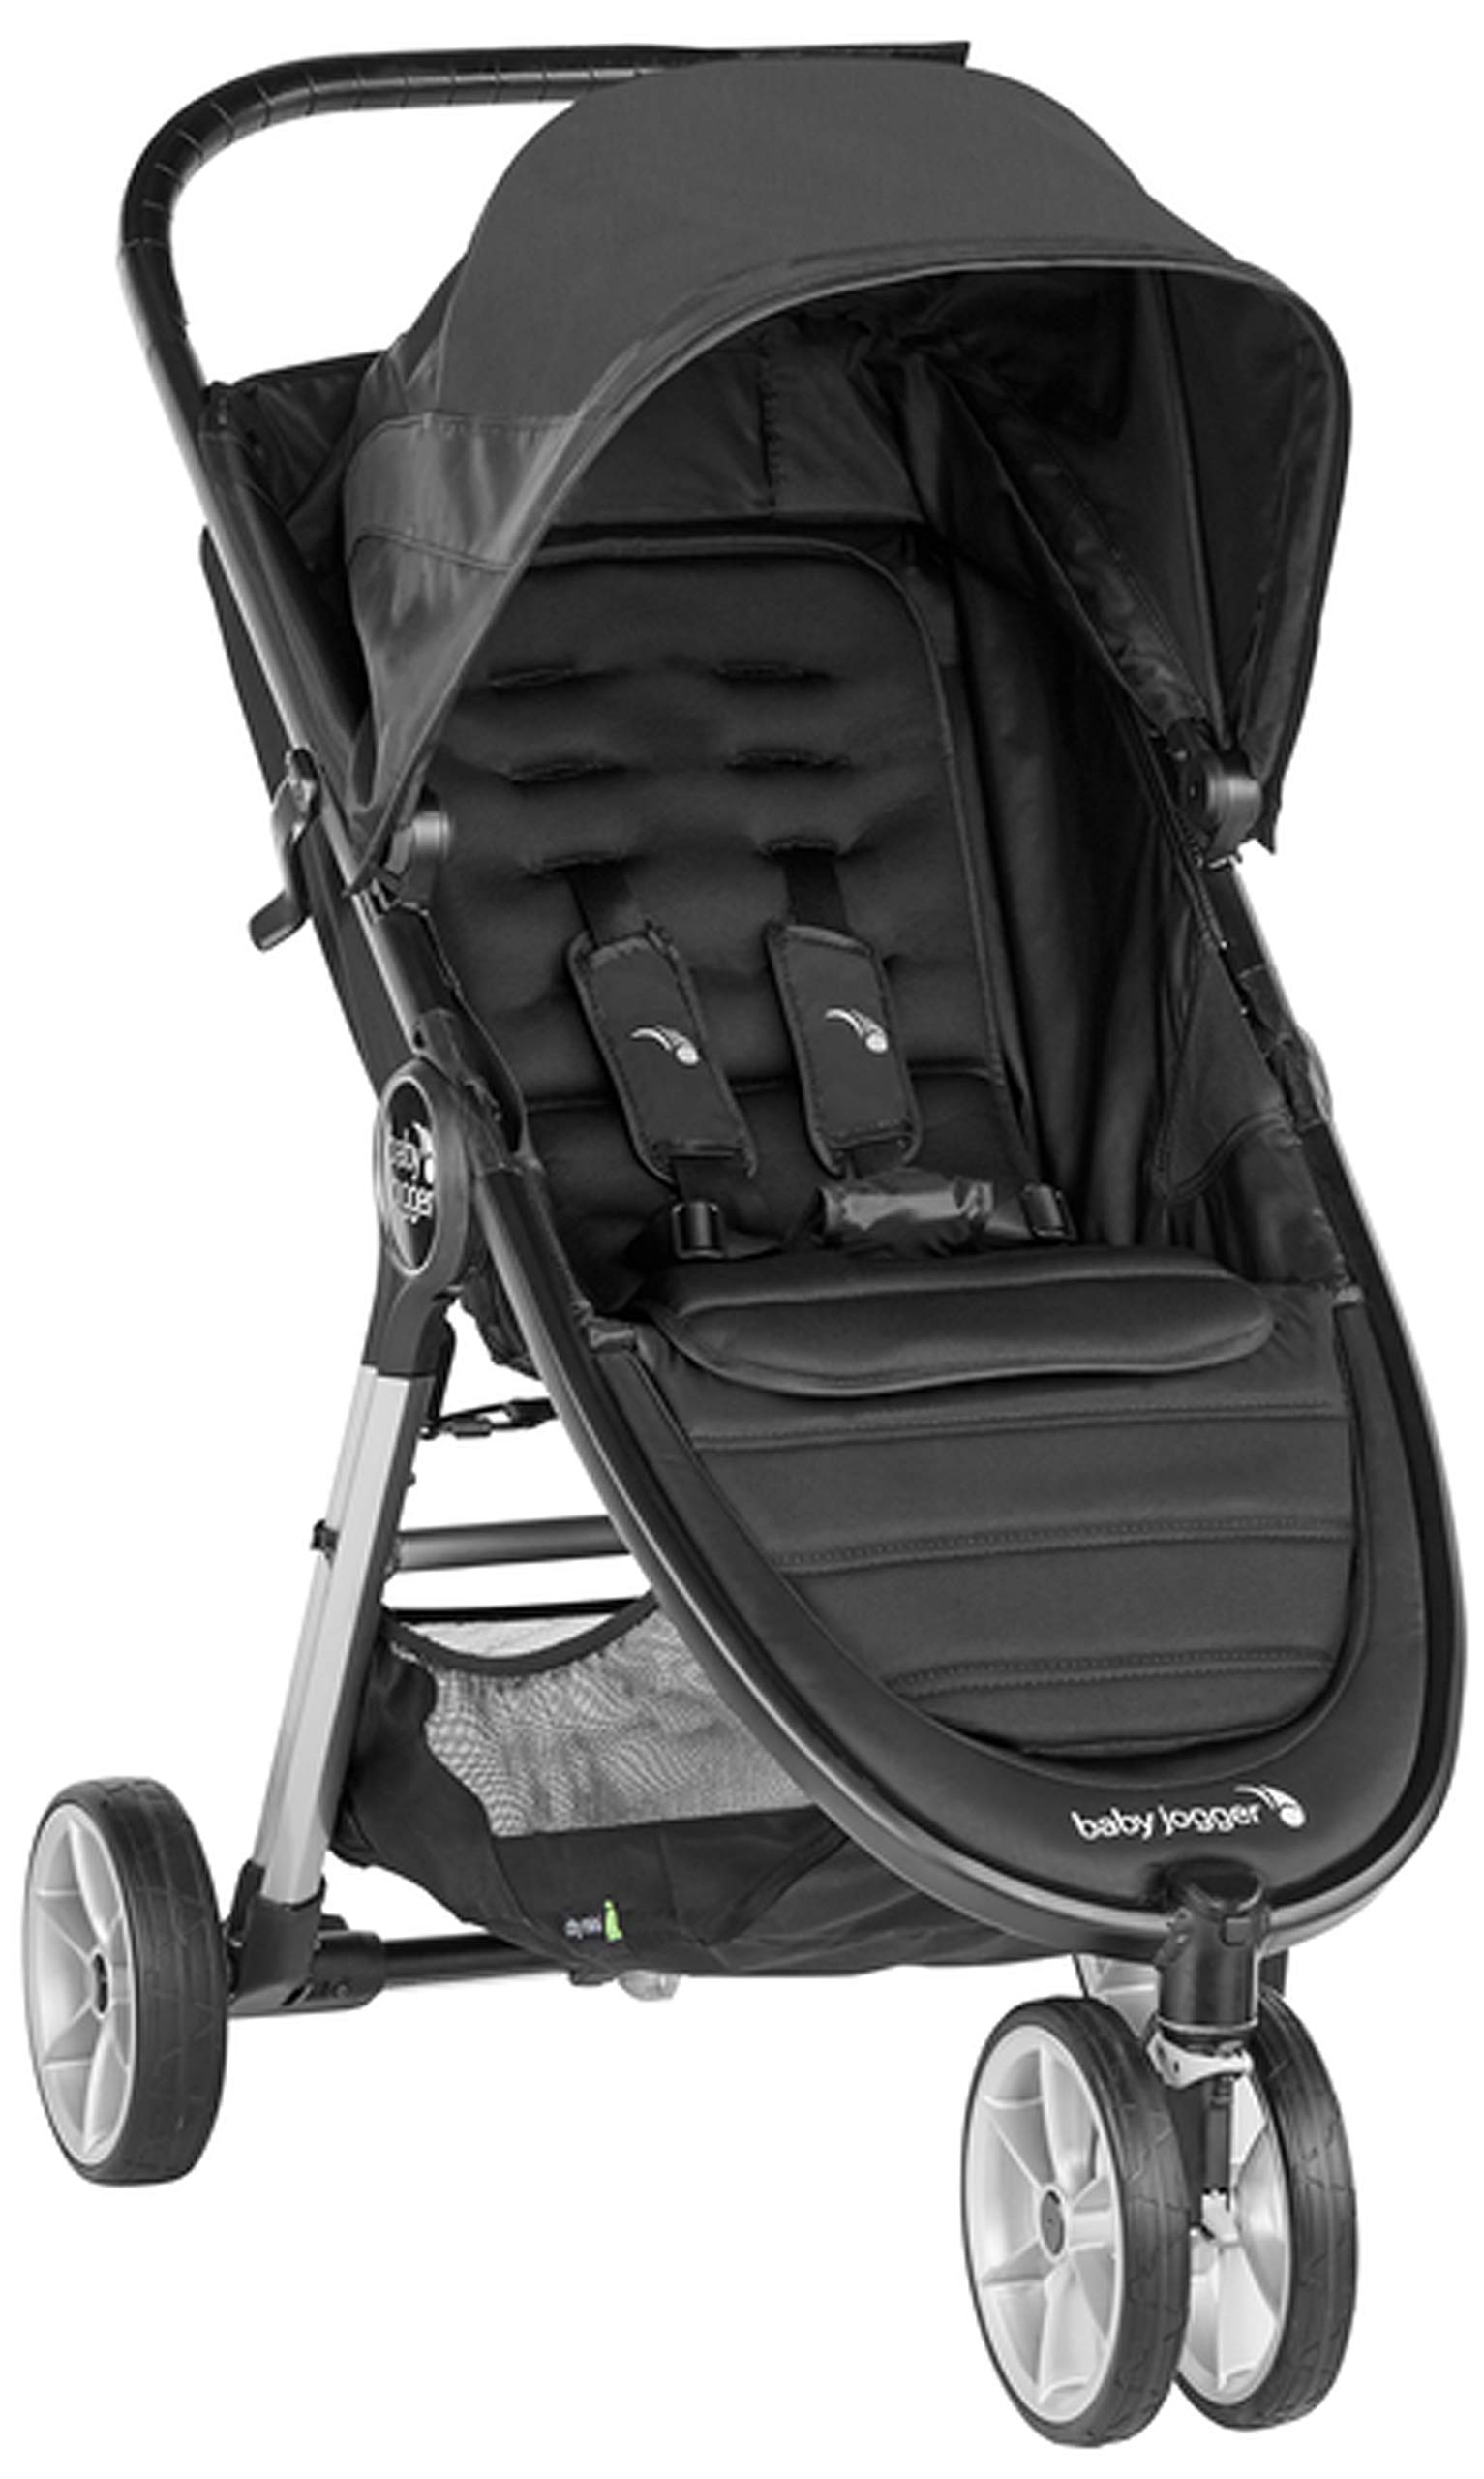 baby jogger City Mini 2 Single Stroller Jet Baby Jogger The baby jogger city mini 2 has an all new lightweight and compact design with the signature one-hand compact fold, with an auto-lock it's remarkably nimble and ready for adventure Lift a strap with one hand and the city mini 2 folds itself: simply and compactly. The auto-lock will lock the fold for transportation or storage The seat, with an adjustable calf support and near-flat recline, holds a child weighing up to 22kg and includes a 5-point stroller harness to keep them comfortable and safely secured 2